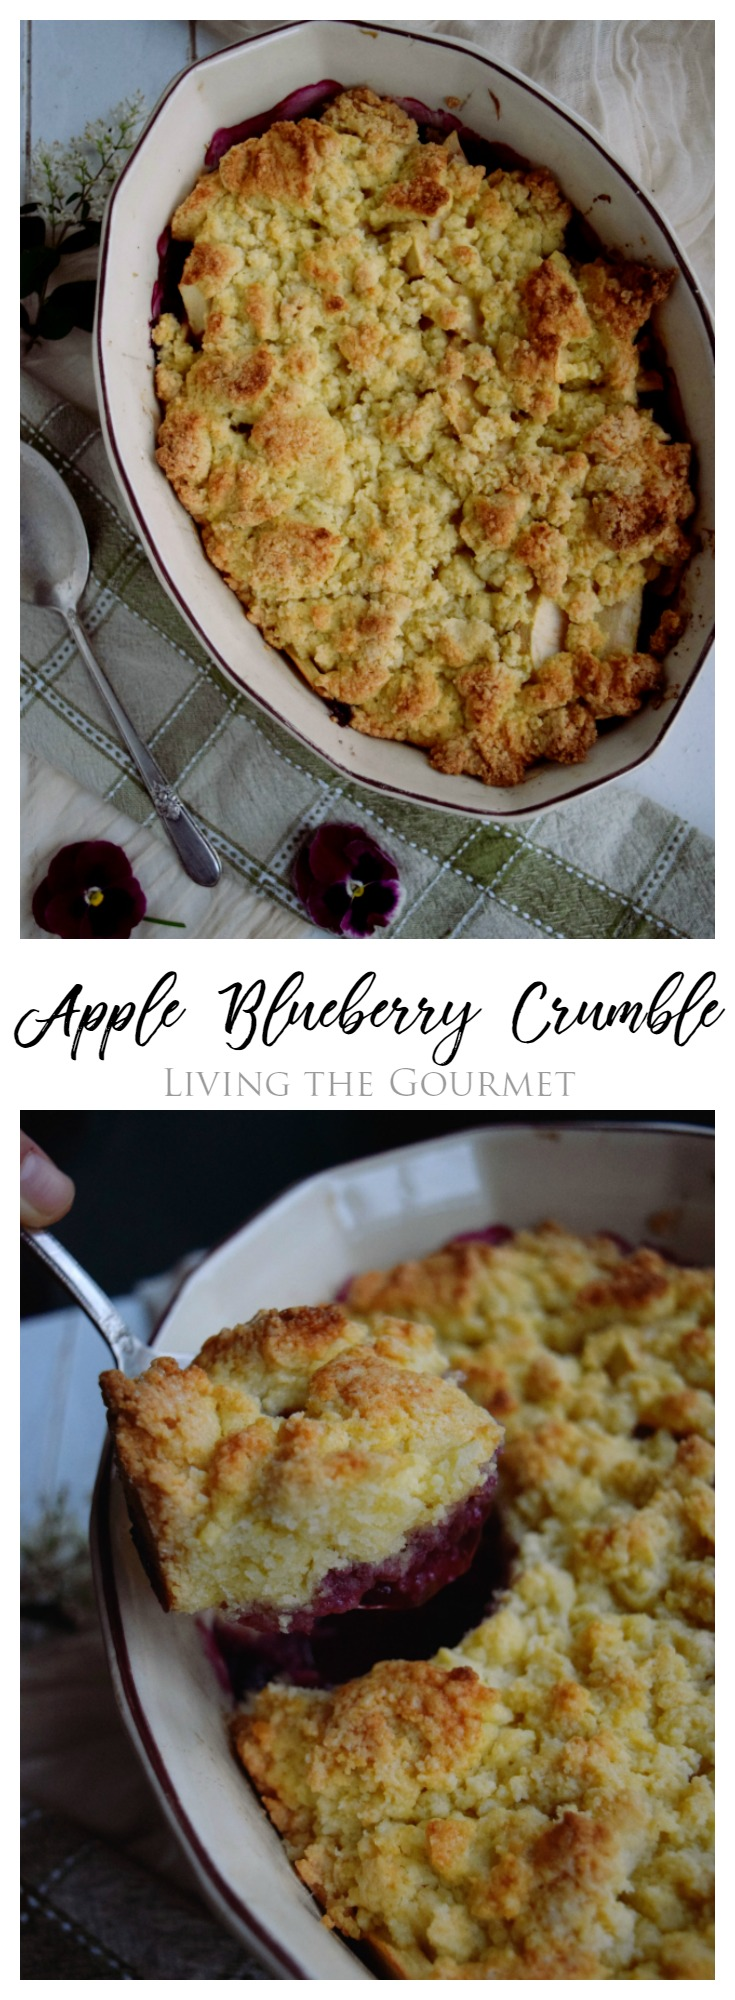 Apple Blueberry Crumble - Savor the sweetness of summer with this easy recipe bursting with blueberries mixed with apple slices then topped with a buttery crumble.